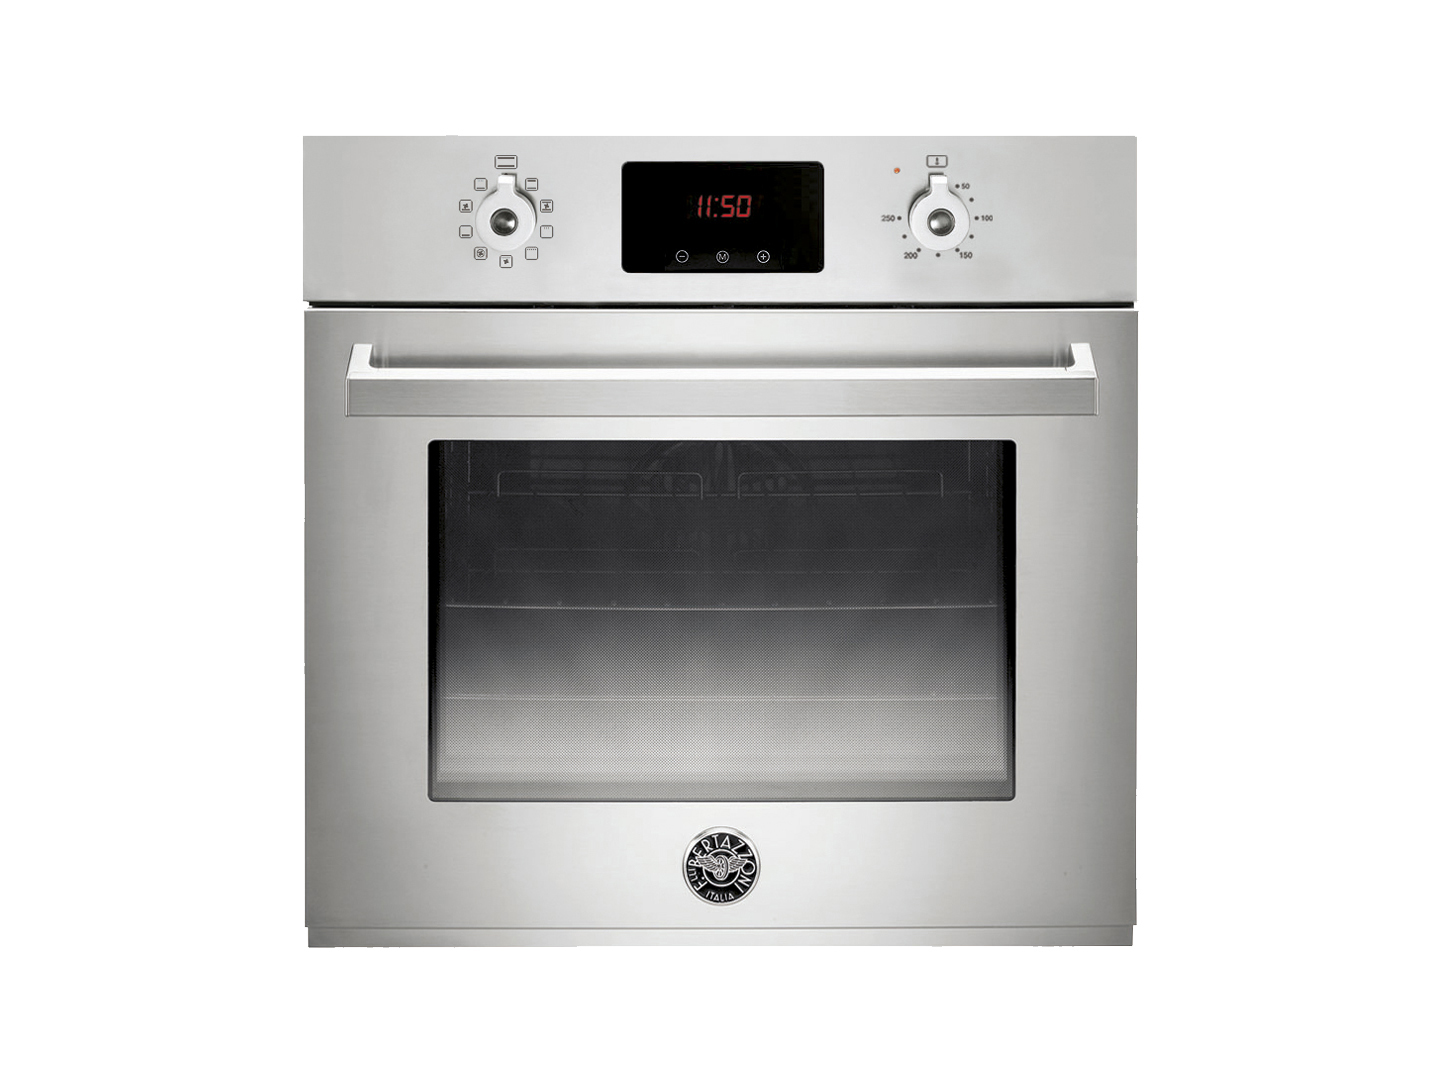 60 single oven XA | Bertazzoni - Stainless